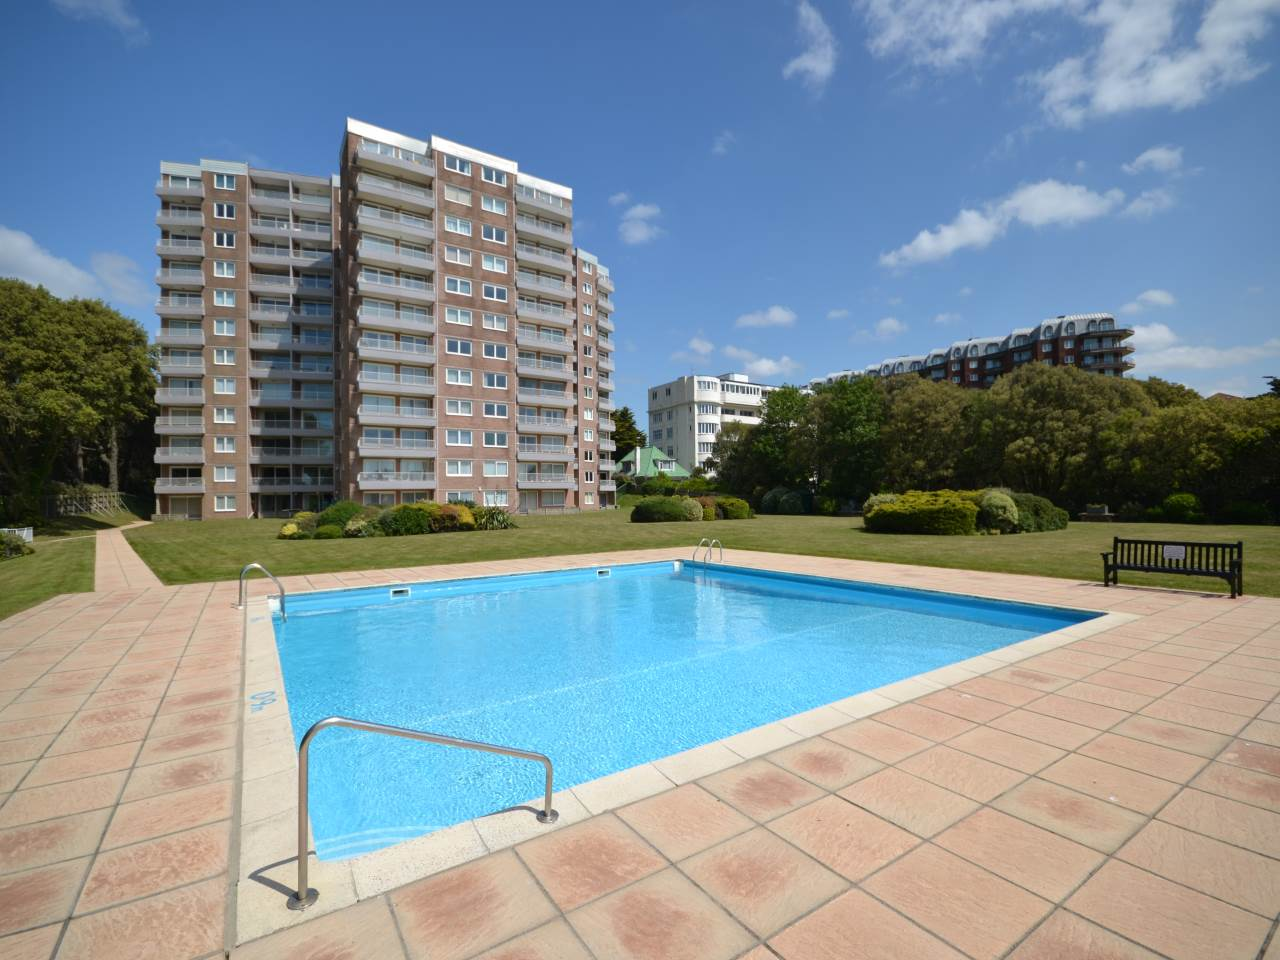 SUPERB SEA VIEW APARTMENT* TWO DOUBLE BEDROOMS * SHARE OF FREEHOLD*MODERN EN SUITES TO BOTH BEDROOMS * LOUNGE/DINING ROOM WITH SOUTH WEST FACING BALCONY* MODERN KITCHEN* SECURE UNDERGROUND GARAGE * HEATED OUTDOOR SWIMMING POOL* NO CHAIN*